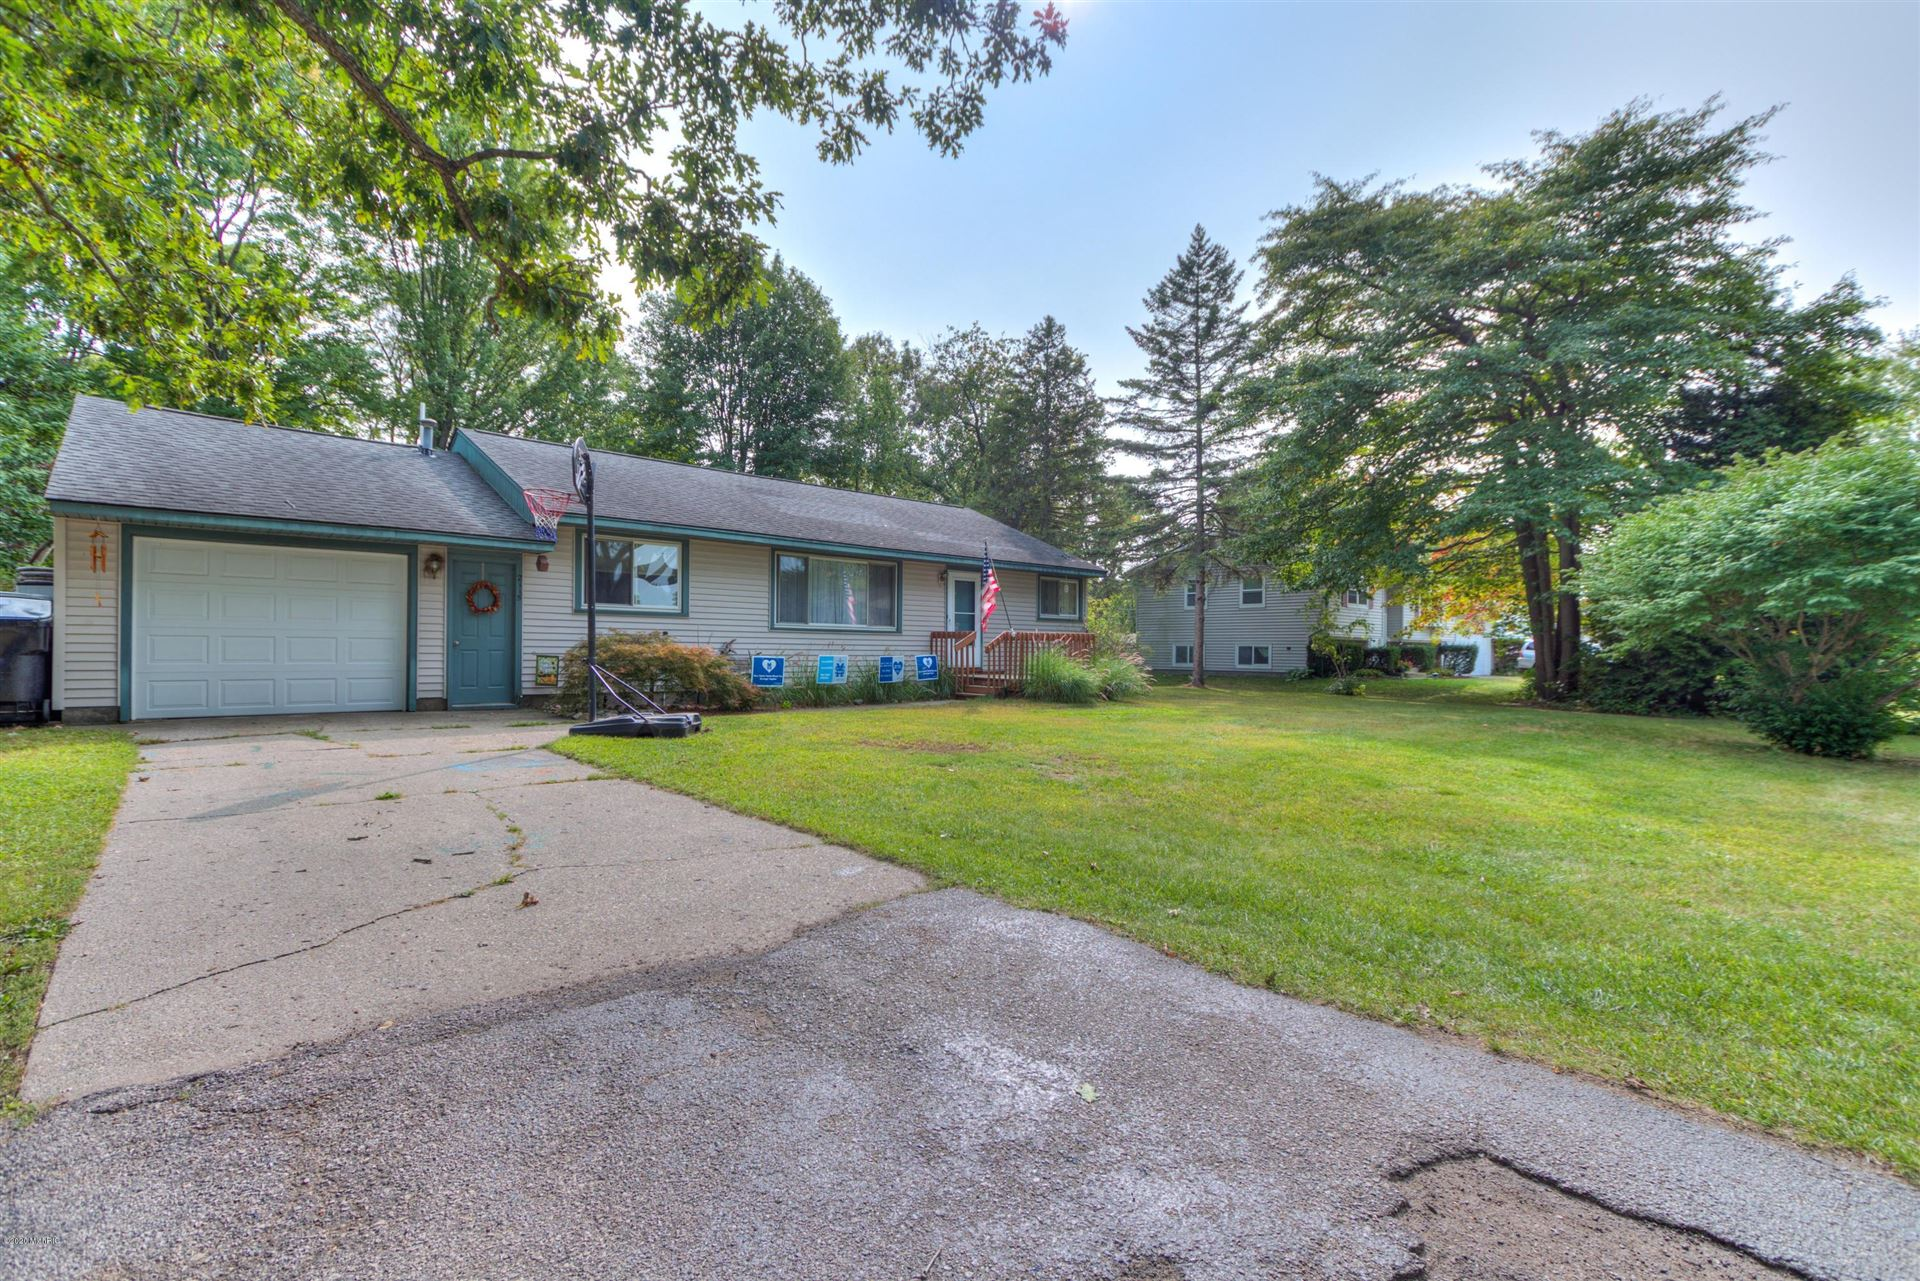 Photo of 2115 Marva Avenue Avenue, Muskegon, MI 49444 (MLS # 20038542)